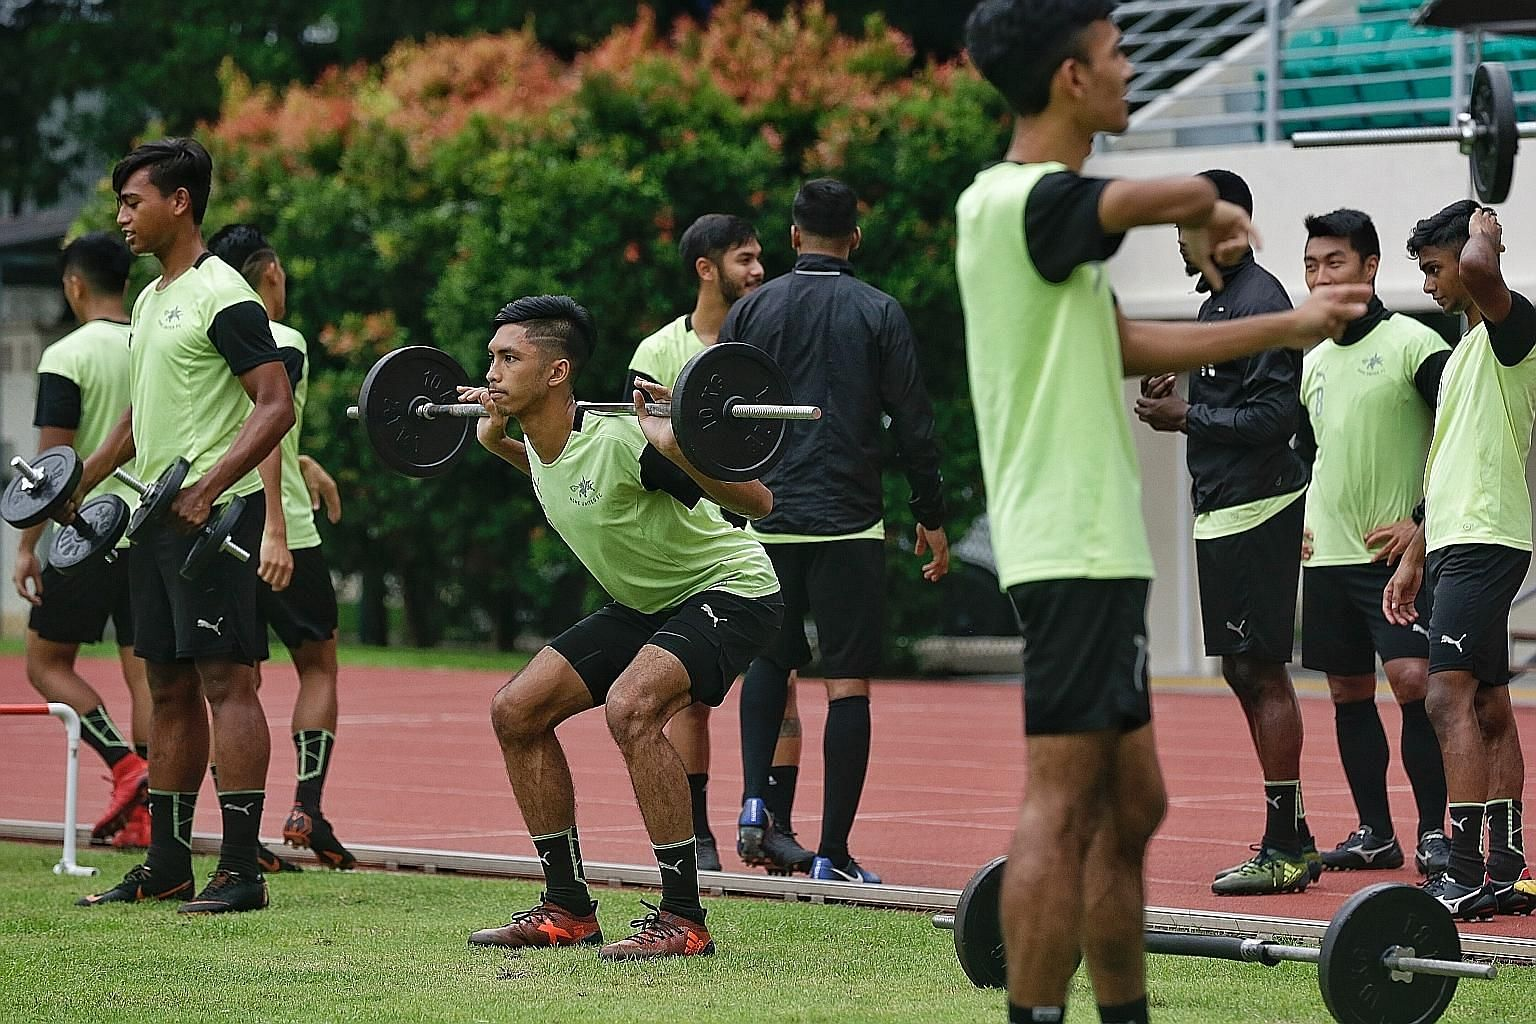 Home United defender Faizal Roslan lifting weights during a training session at Bishan Stadium on Wednesday. The Singapore Premier League side can move into the top half of the table with a win over third-placed Brunei DPMM FC today.